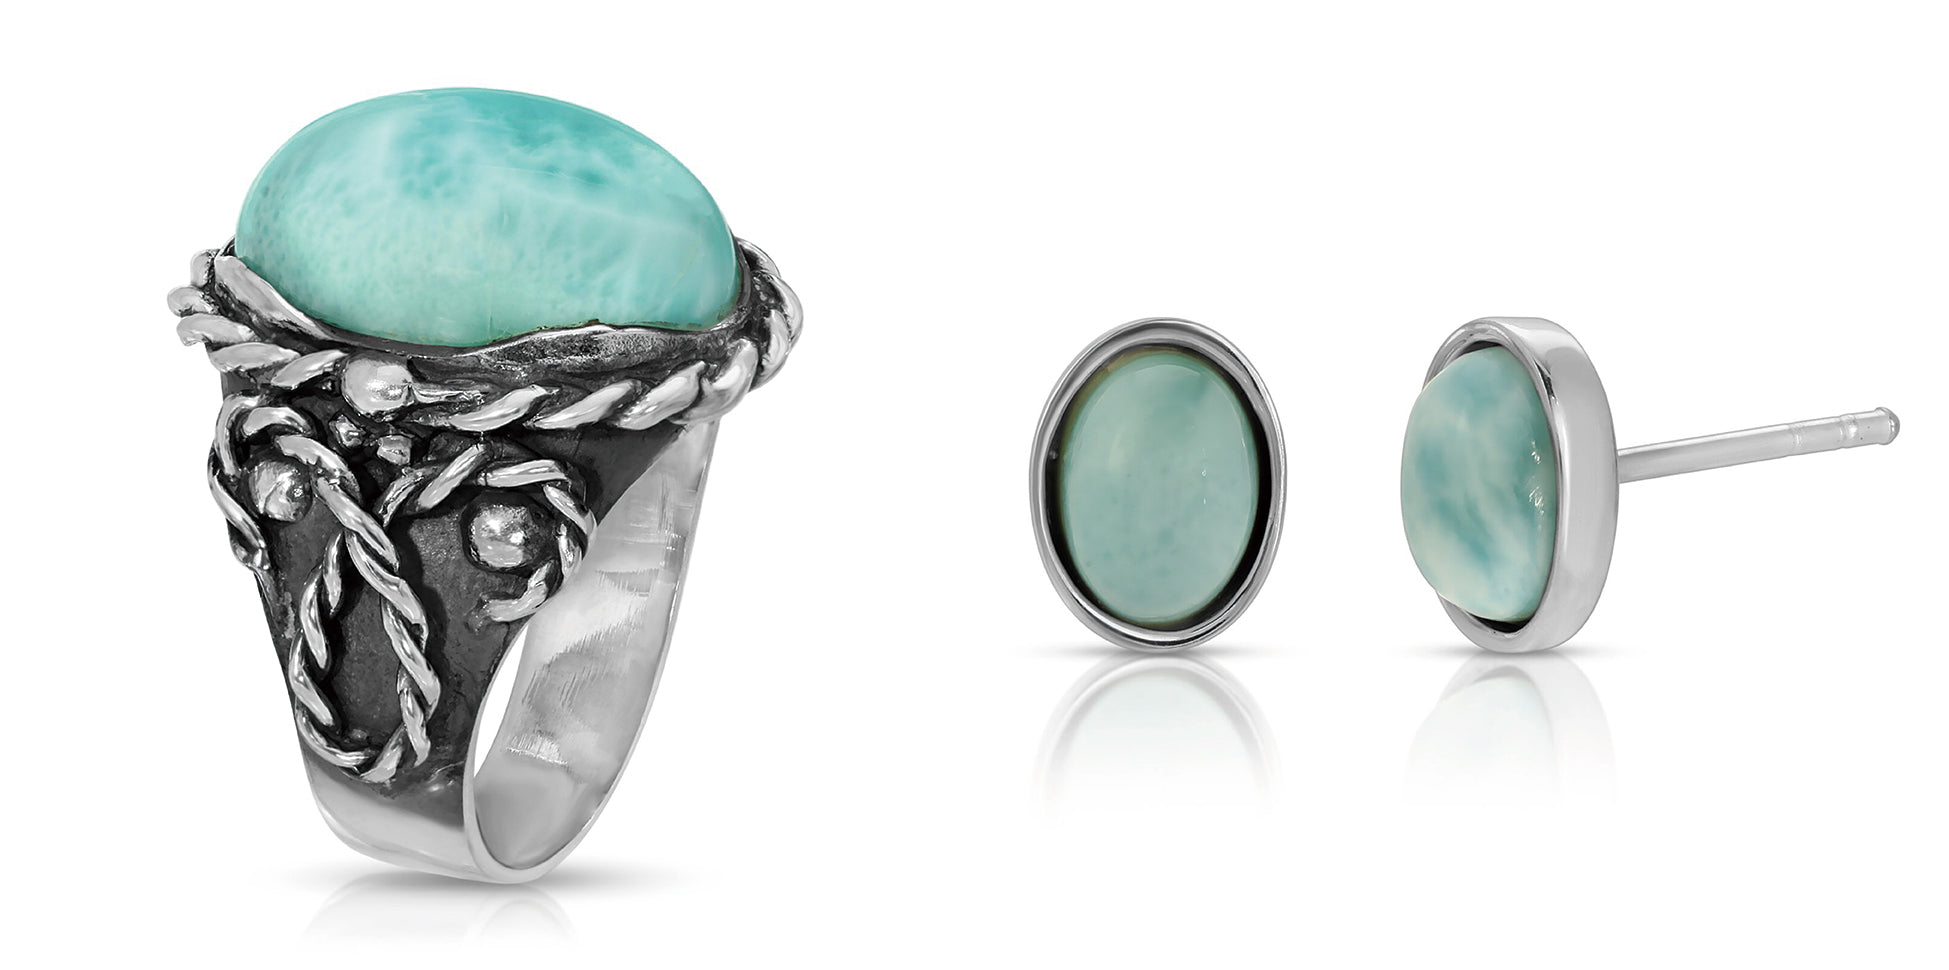 The W Brothers Larimar Braided Oval Ring matched with naturally sourced Larimar Gemstone Earrings for a complete refined look for female and women fashion accessory look. Hand-crafted with premium Grade A 925 Sterling Silver, this bundle set is a perfect combination for a vintage and modernistic look.